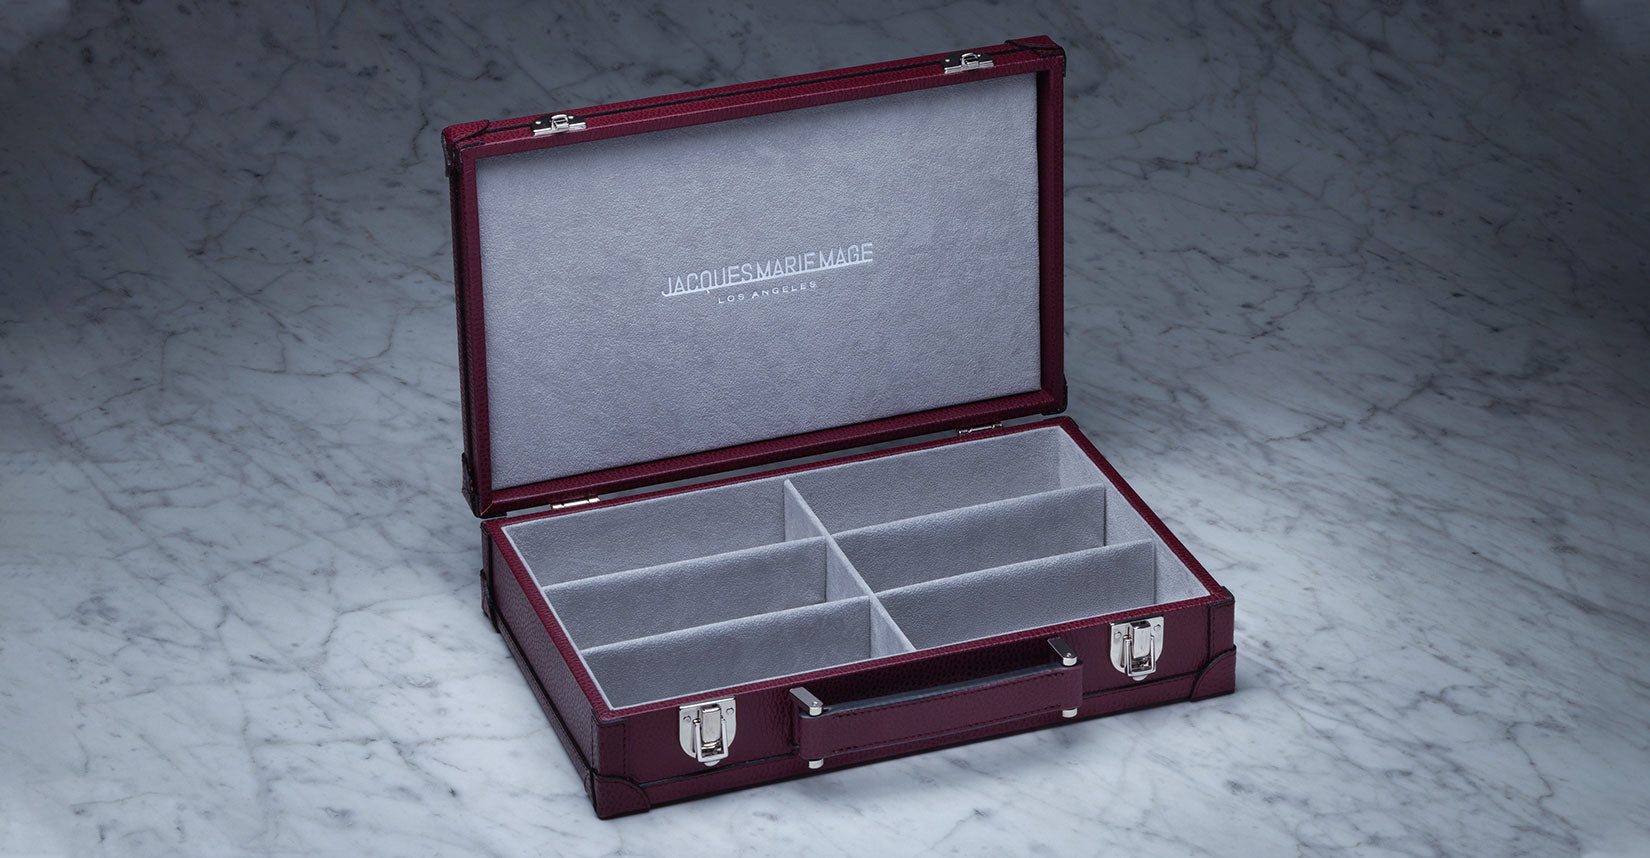 Jaques Marie Mage Custom Eyewear Briefcase